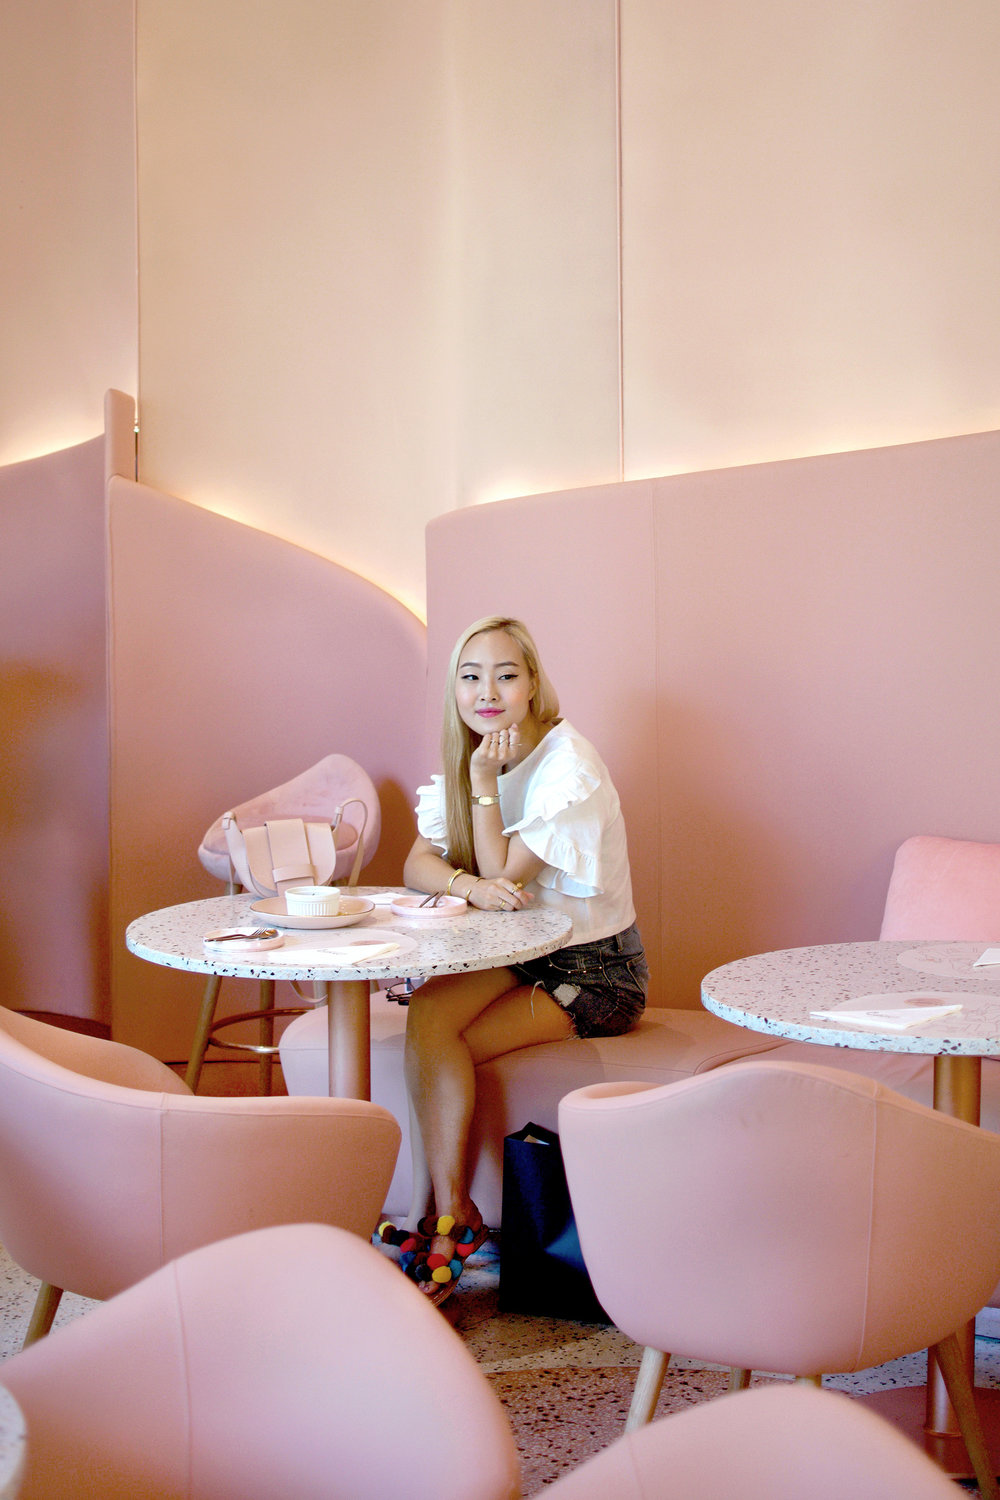 House of Eden   has got to be the prettiest pink cafe in Bangkok, Thailand. This gorgeous pink wonderland is located inside of Groove @ Central World, and features the most luxurious, floor to ceiling pink interior design, and Instagram-worthy food and desserts. Check out more gorgeous views of the interior, delicious desserts, and outfit shots! | #ontheblog | #ootd | #travelThailand | #traveloutfit | #MillennialPink | #Bangkok | #visitThailand | #travelguide | #thingstodo